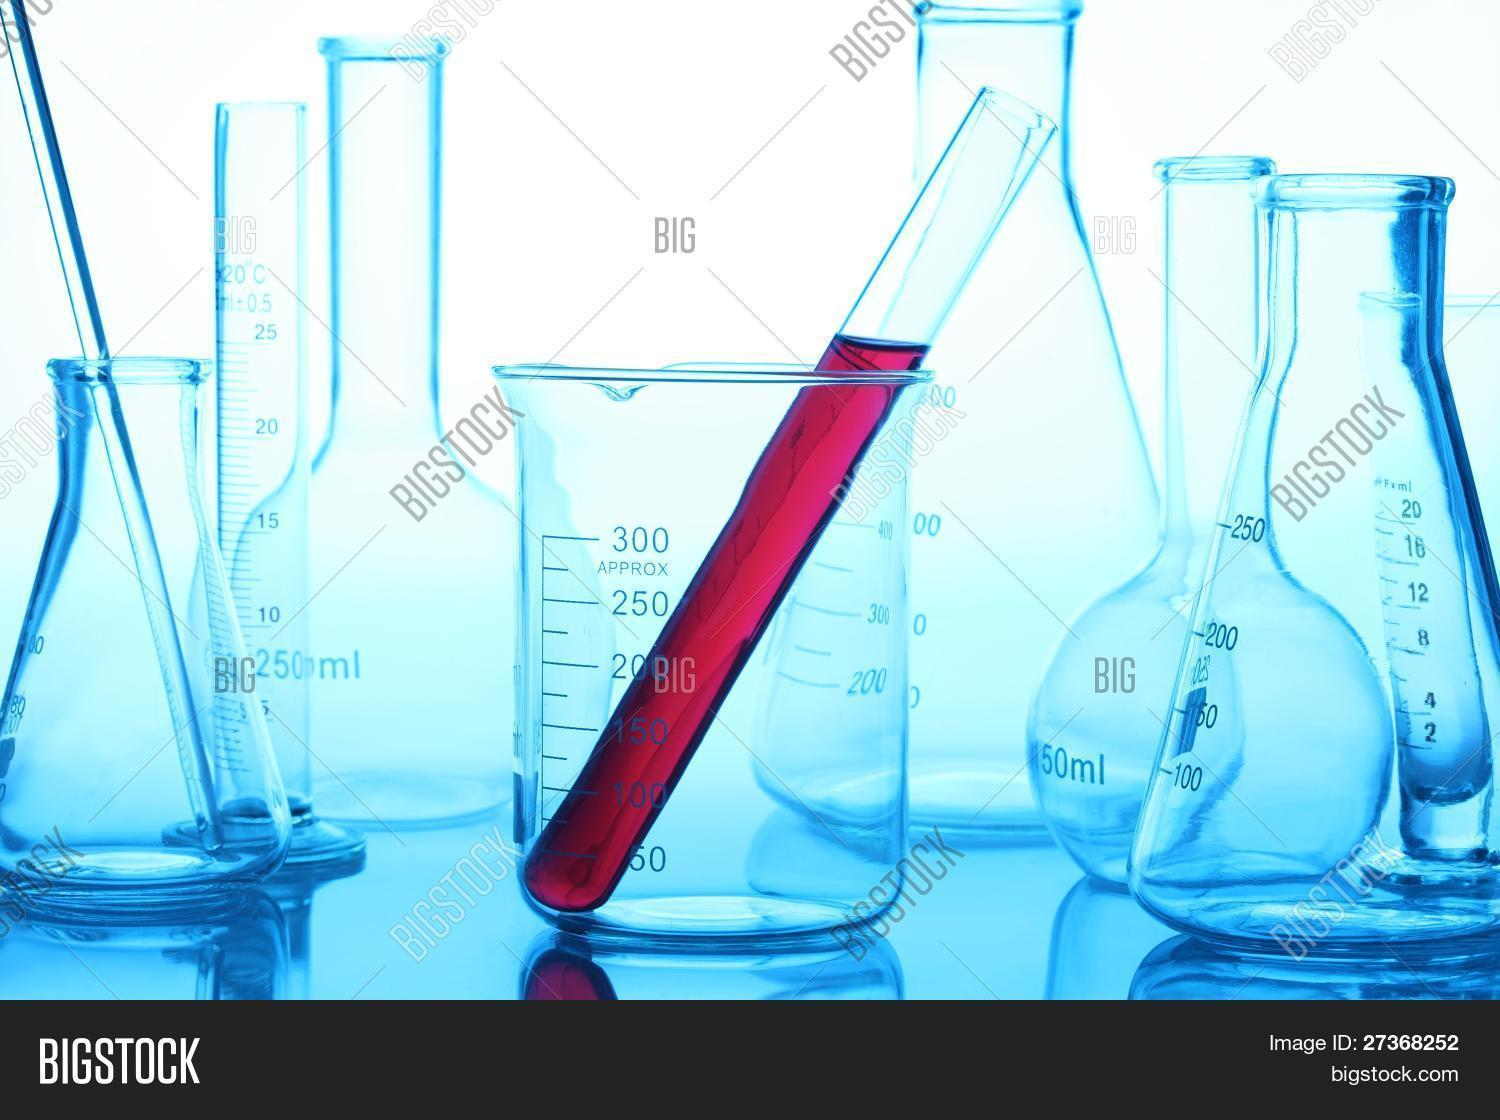 Http Www Bigstockphoto Mx Image 27368228 Stock Photo